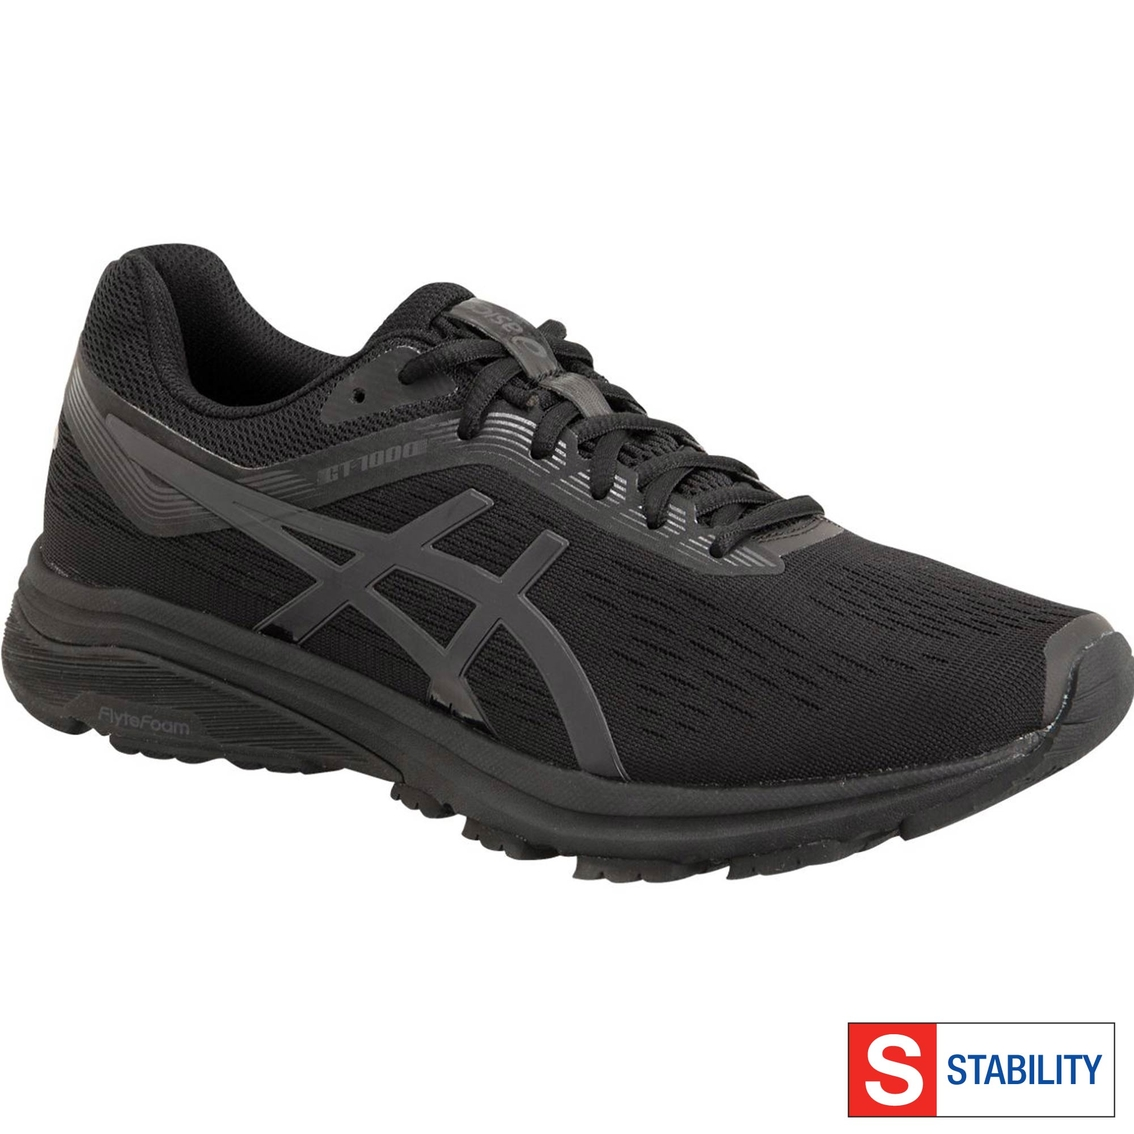 6753b03091 Asics Men's Gt-1000 7 Running Shoes | Running | Shoes | Shop The ...